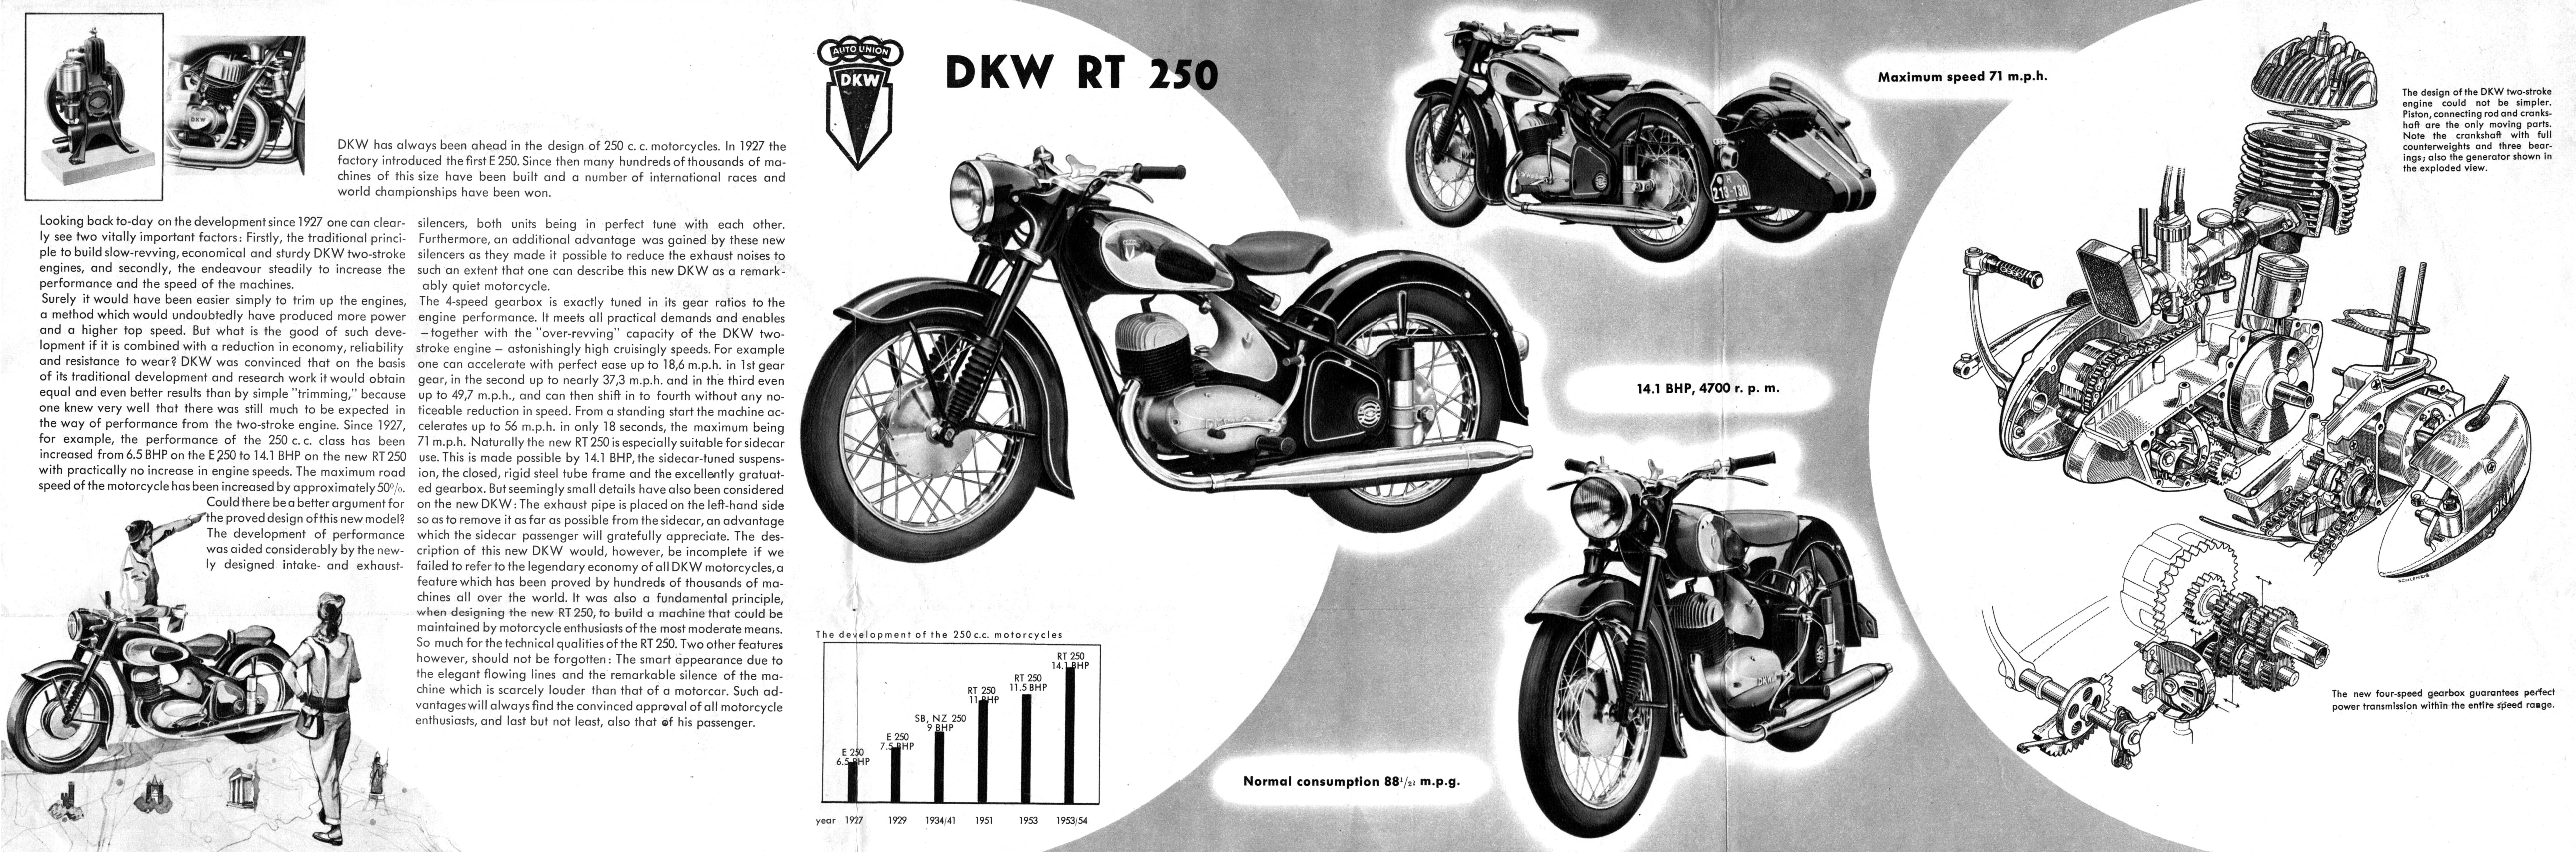 Dkw Dokumente Zum Download How To Read Wiring Diagrams Motorcycle Original Size Back Side 60 X 20 Cm